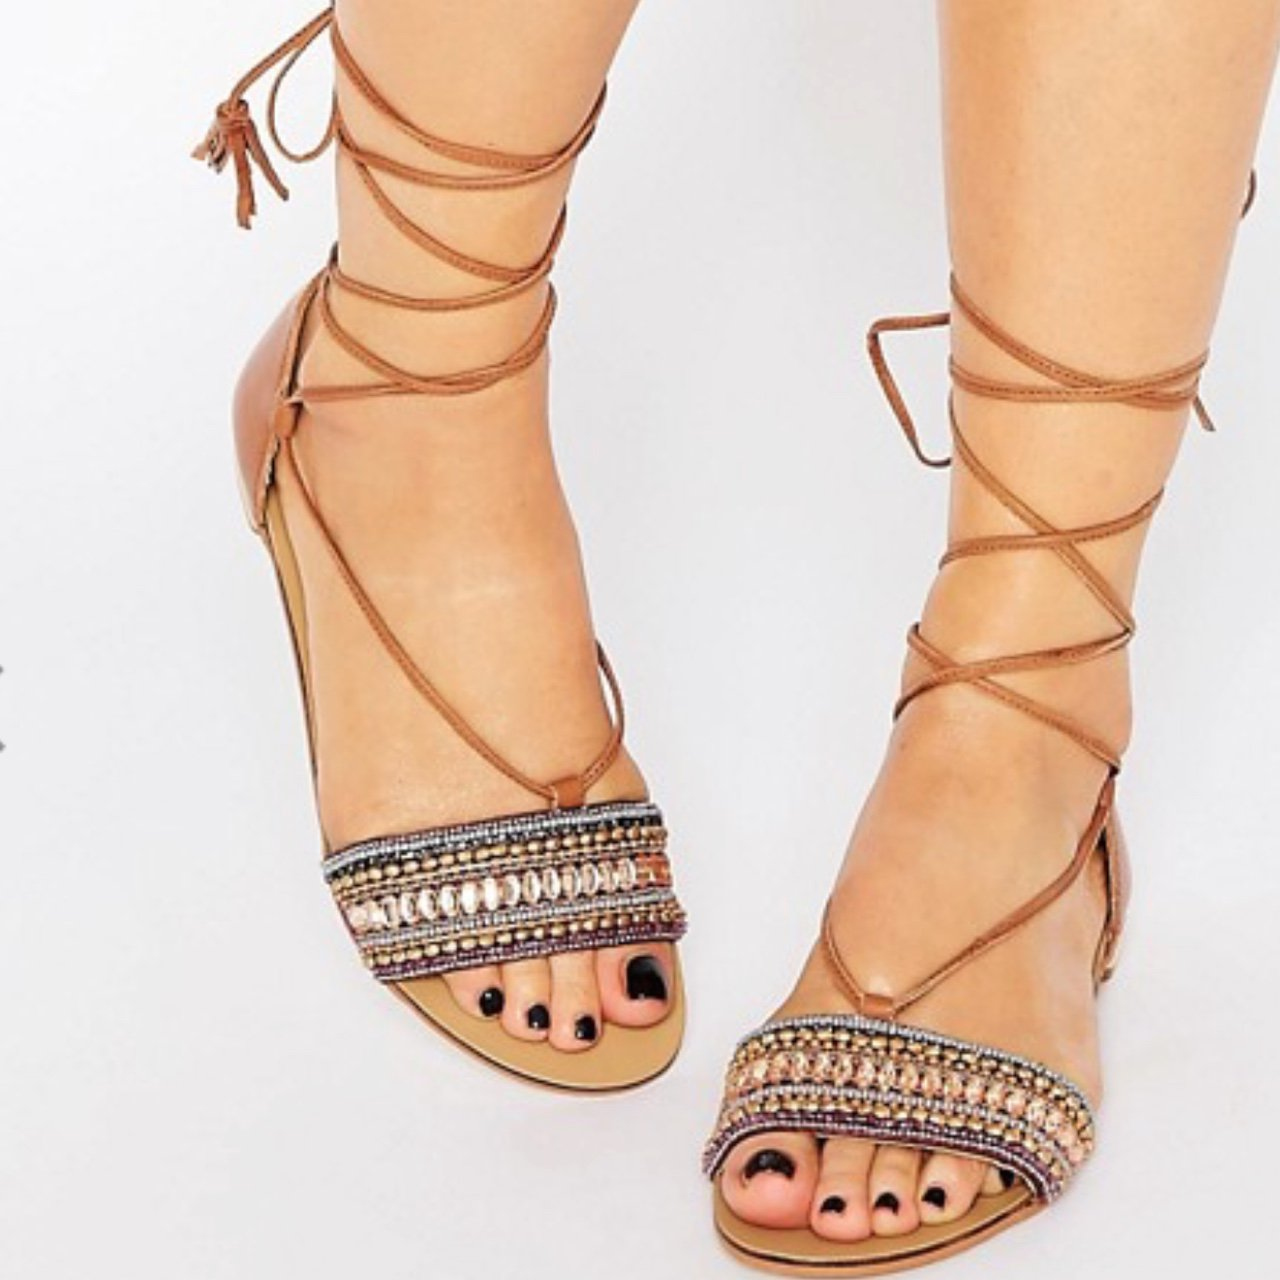 09f6c9b19e00 New look tie up sandals size 6